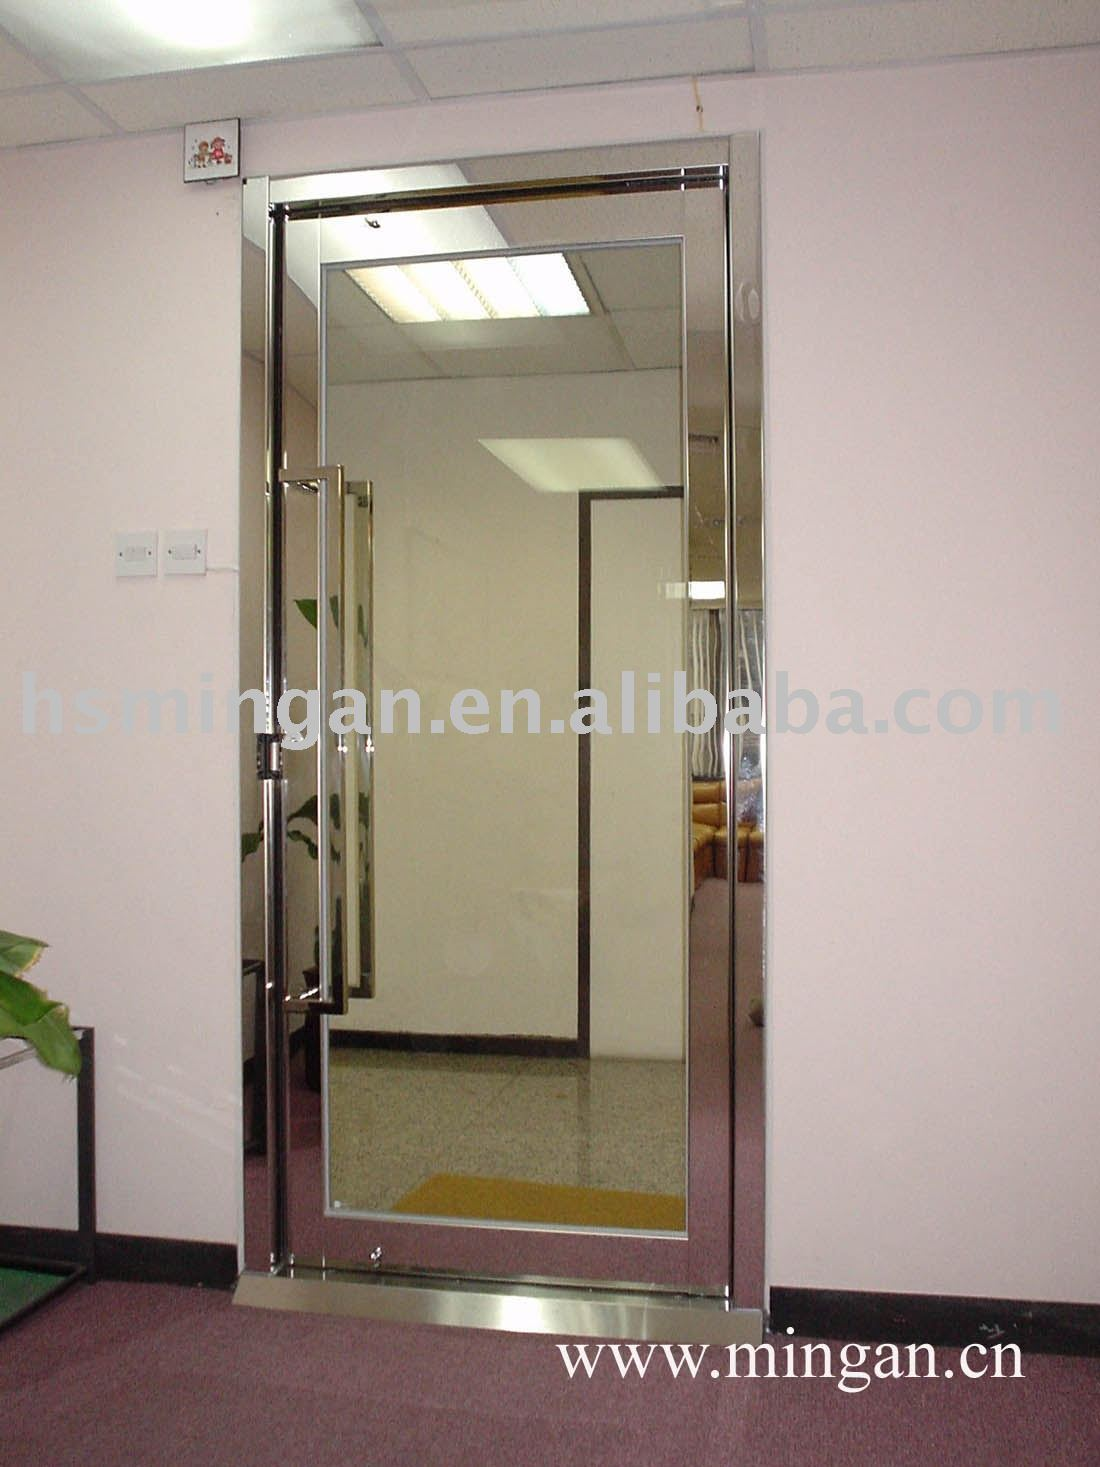 Fire rated glass office doors - Frameless Glass Doors Frameless Glass Doors Suppliers And Manufacturers At Alibaba Com